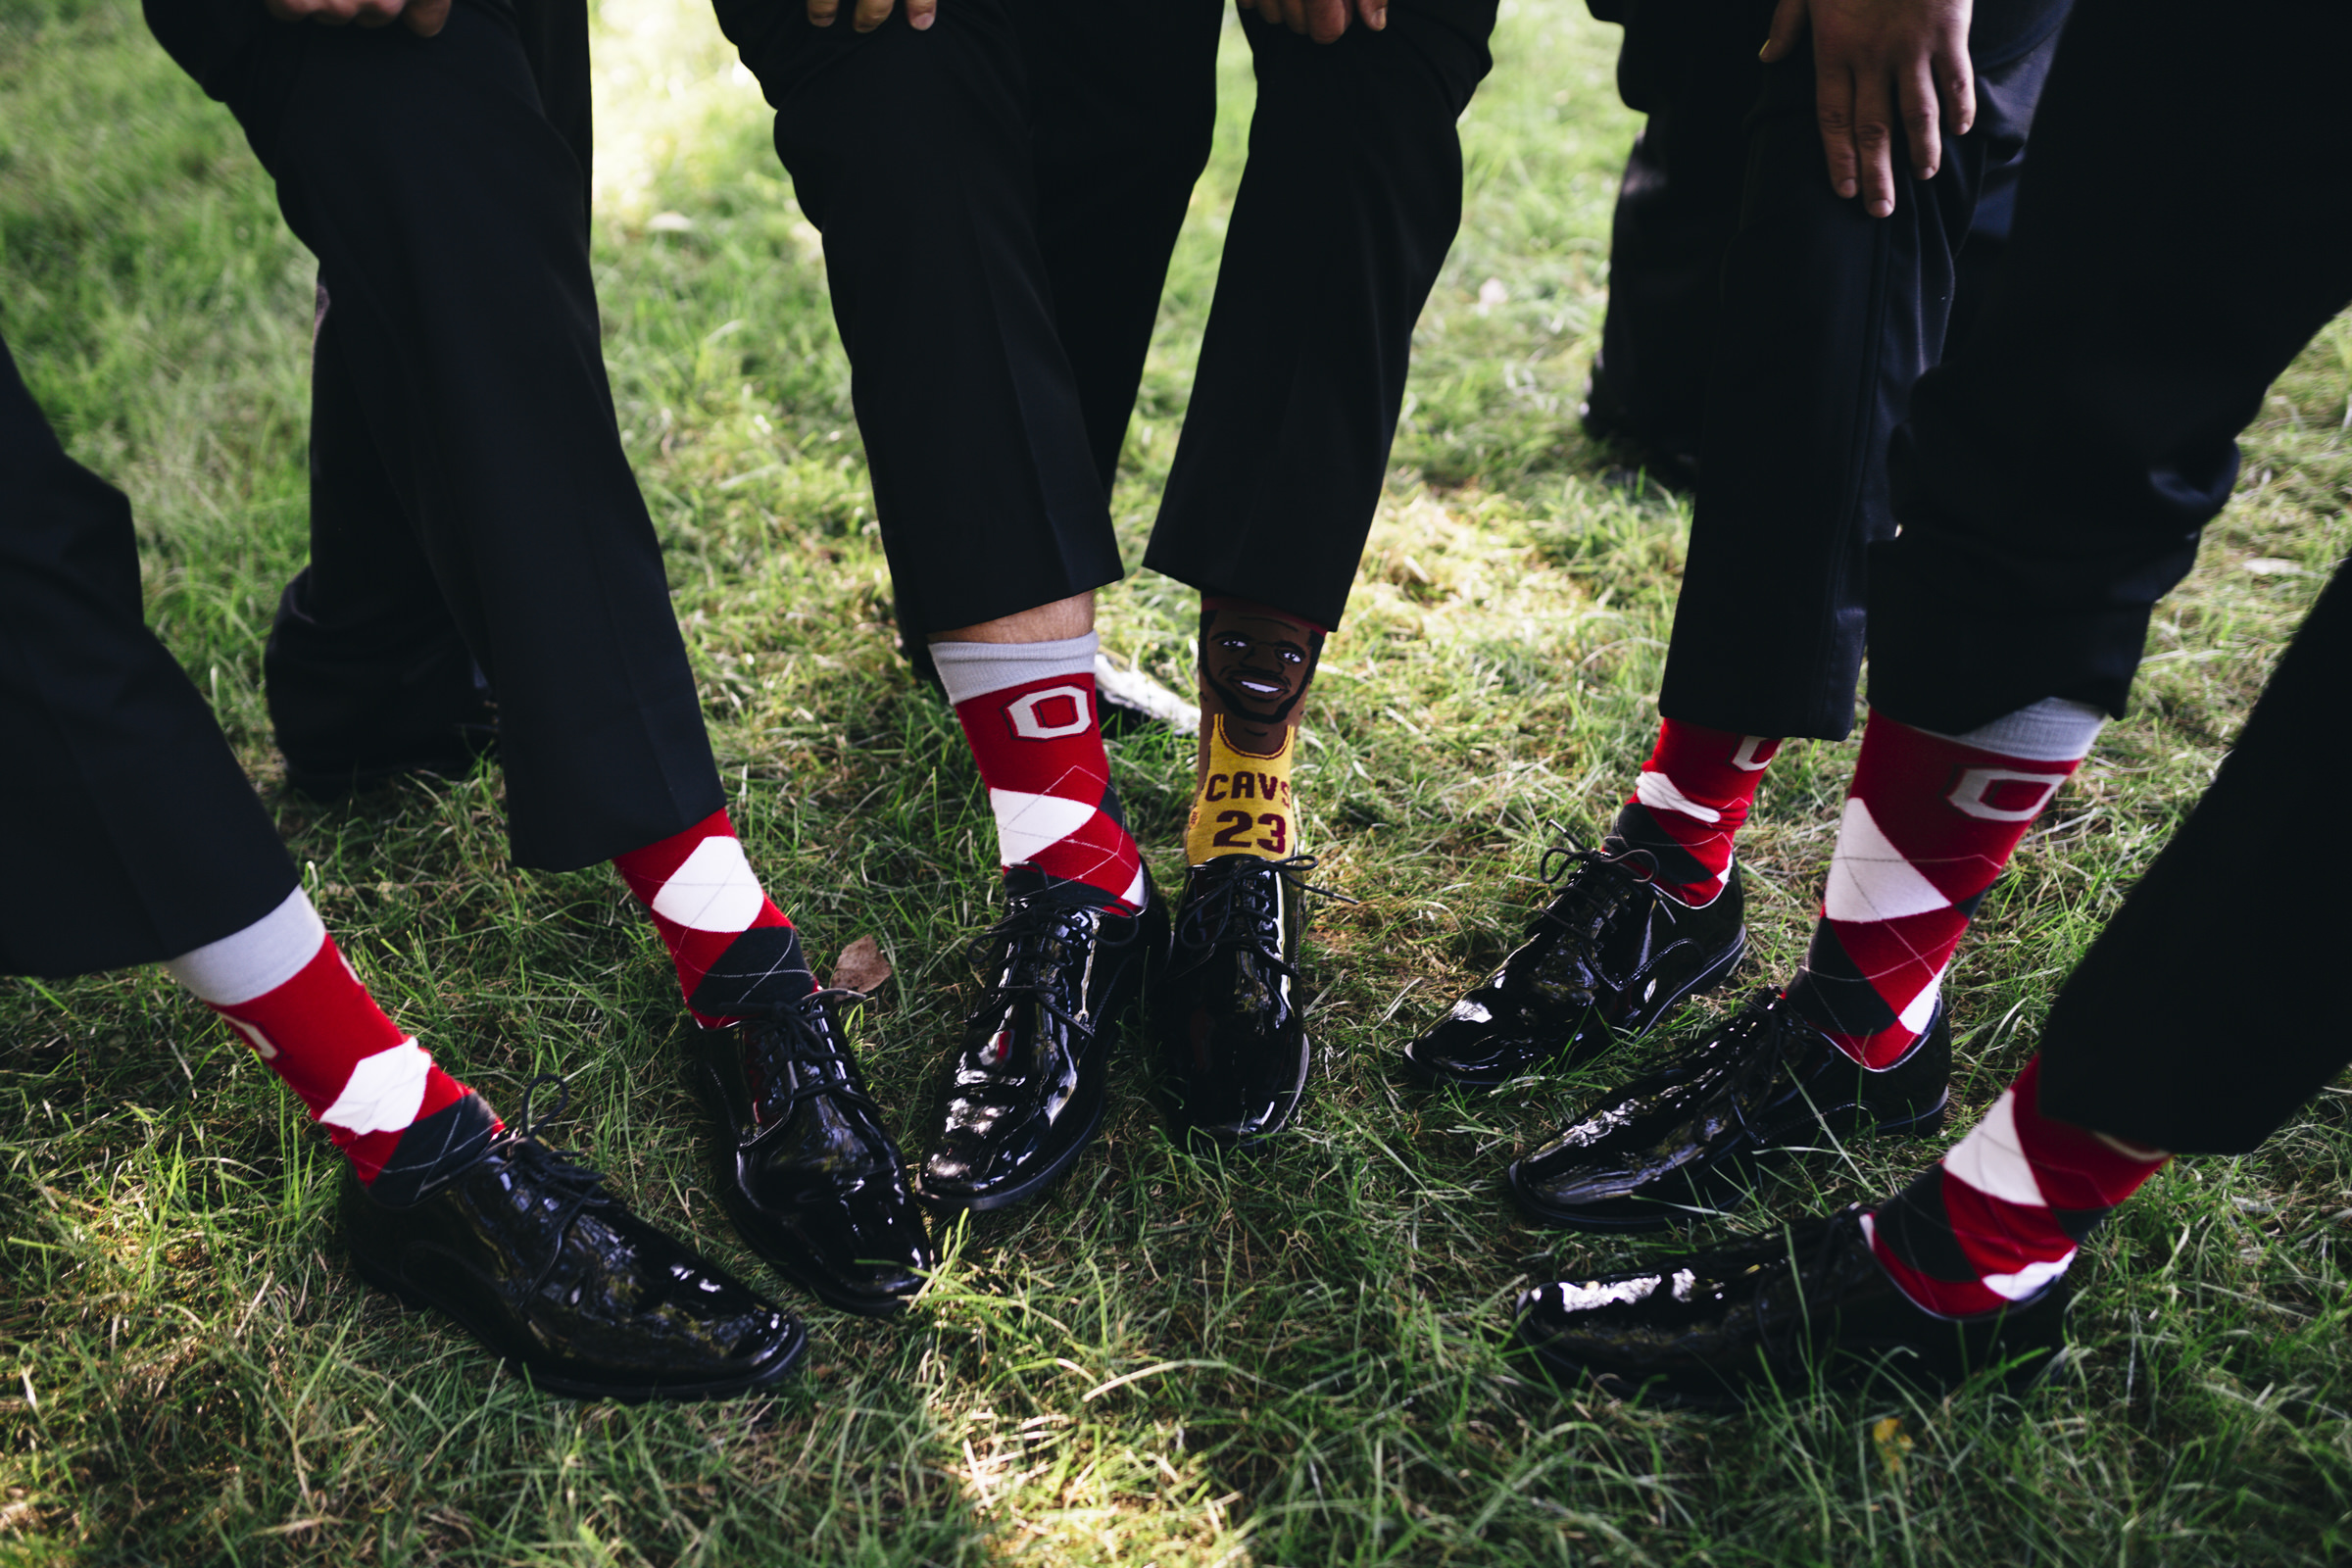 The groomsmen show off their unique socks featuring Ohio State and The Cavs